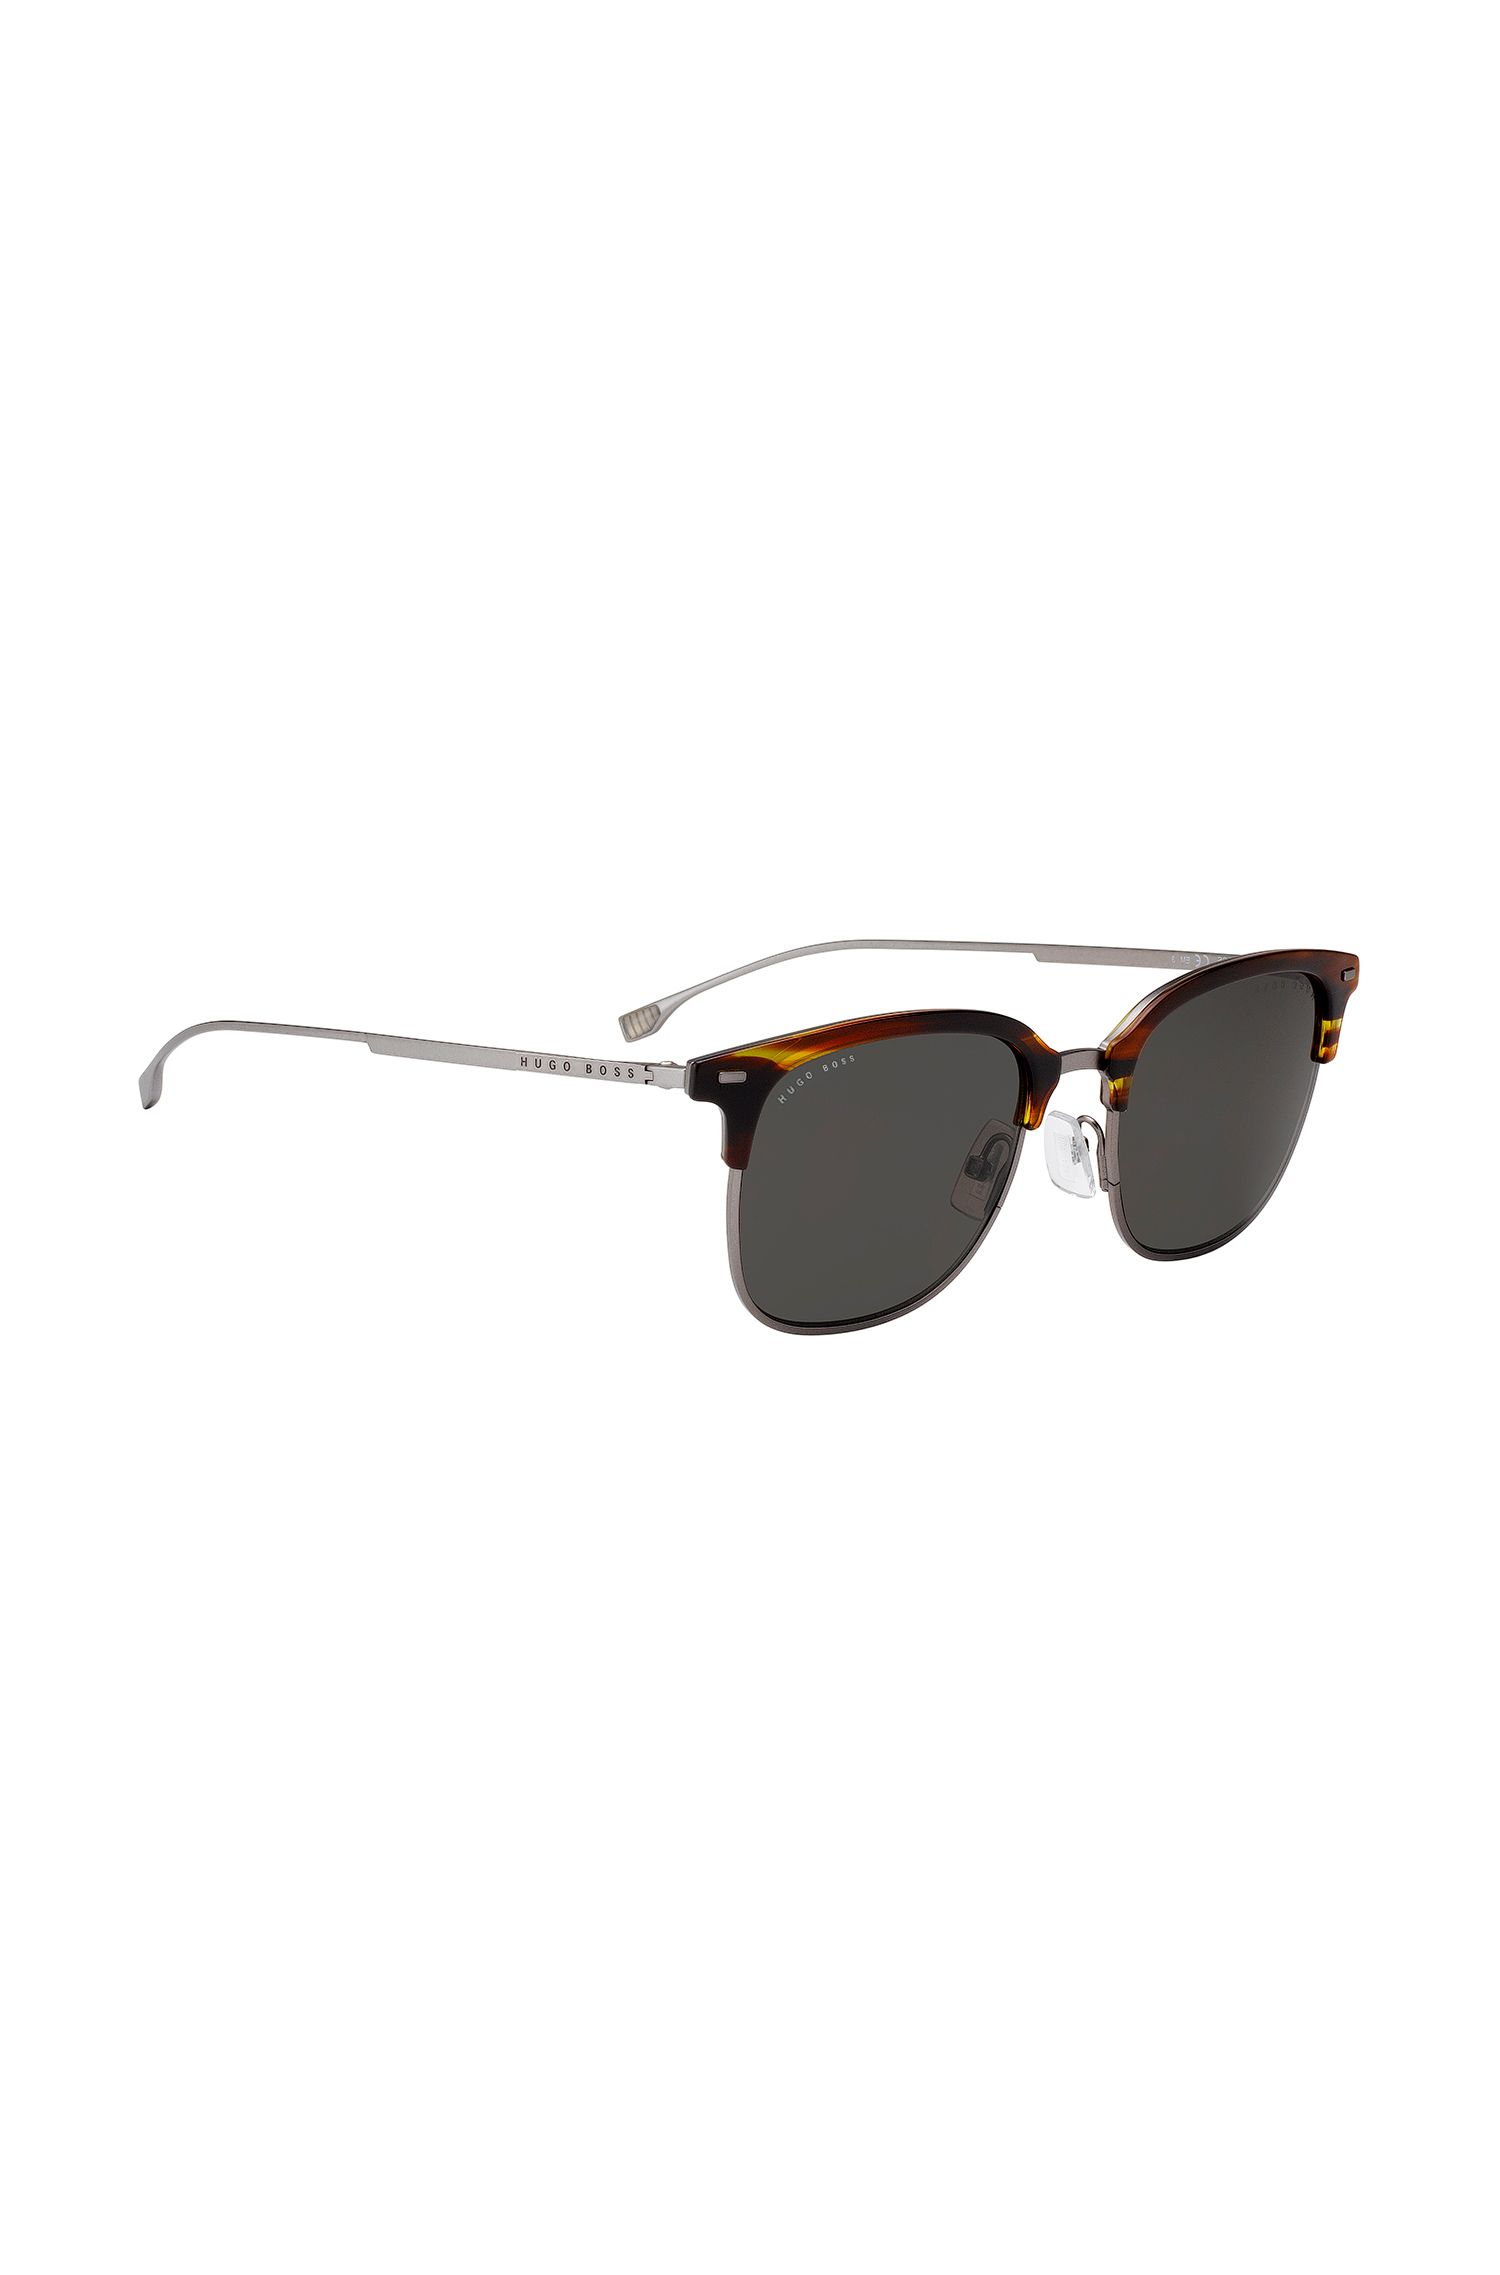 Titanium sunglasses with half frames in brown-horn acetate, Assorted-Pre-Pack